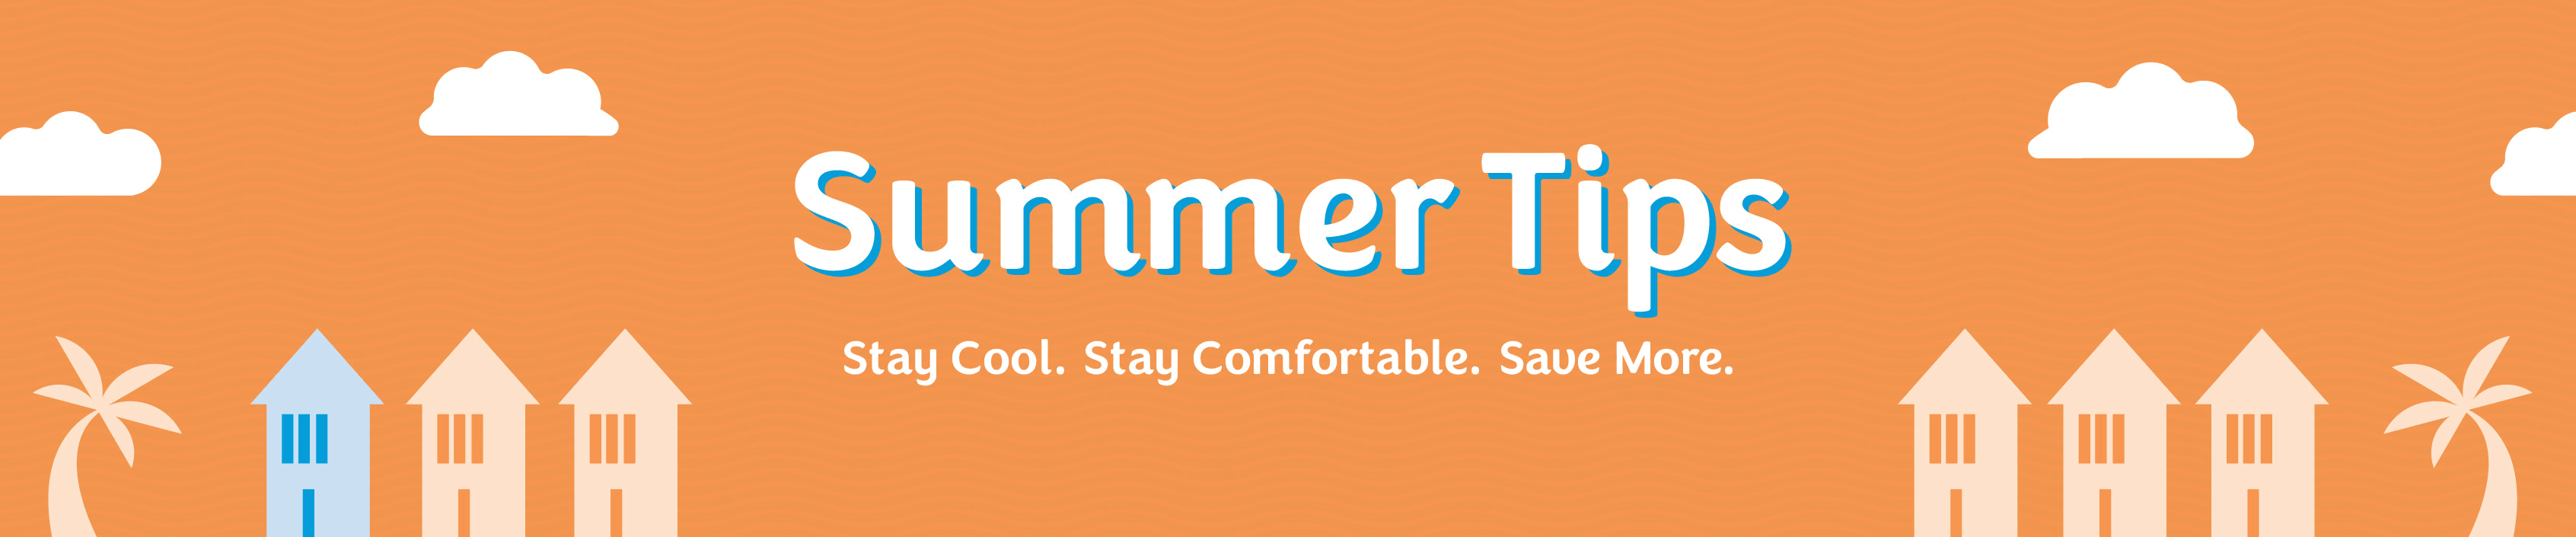 New Summer Savings Tips